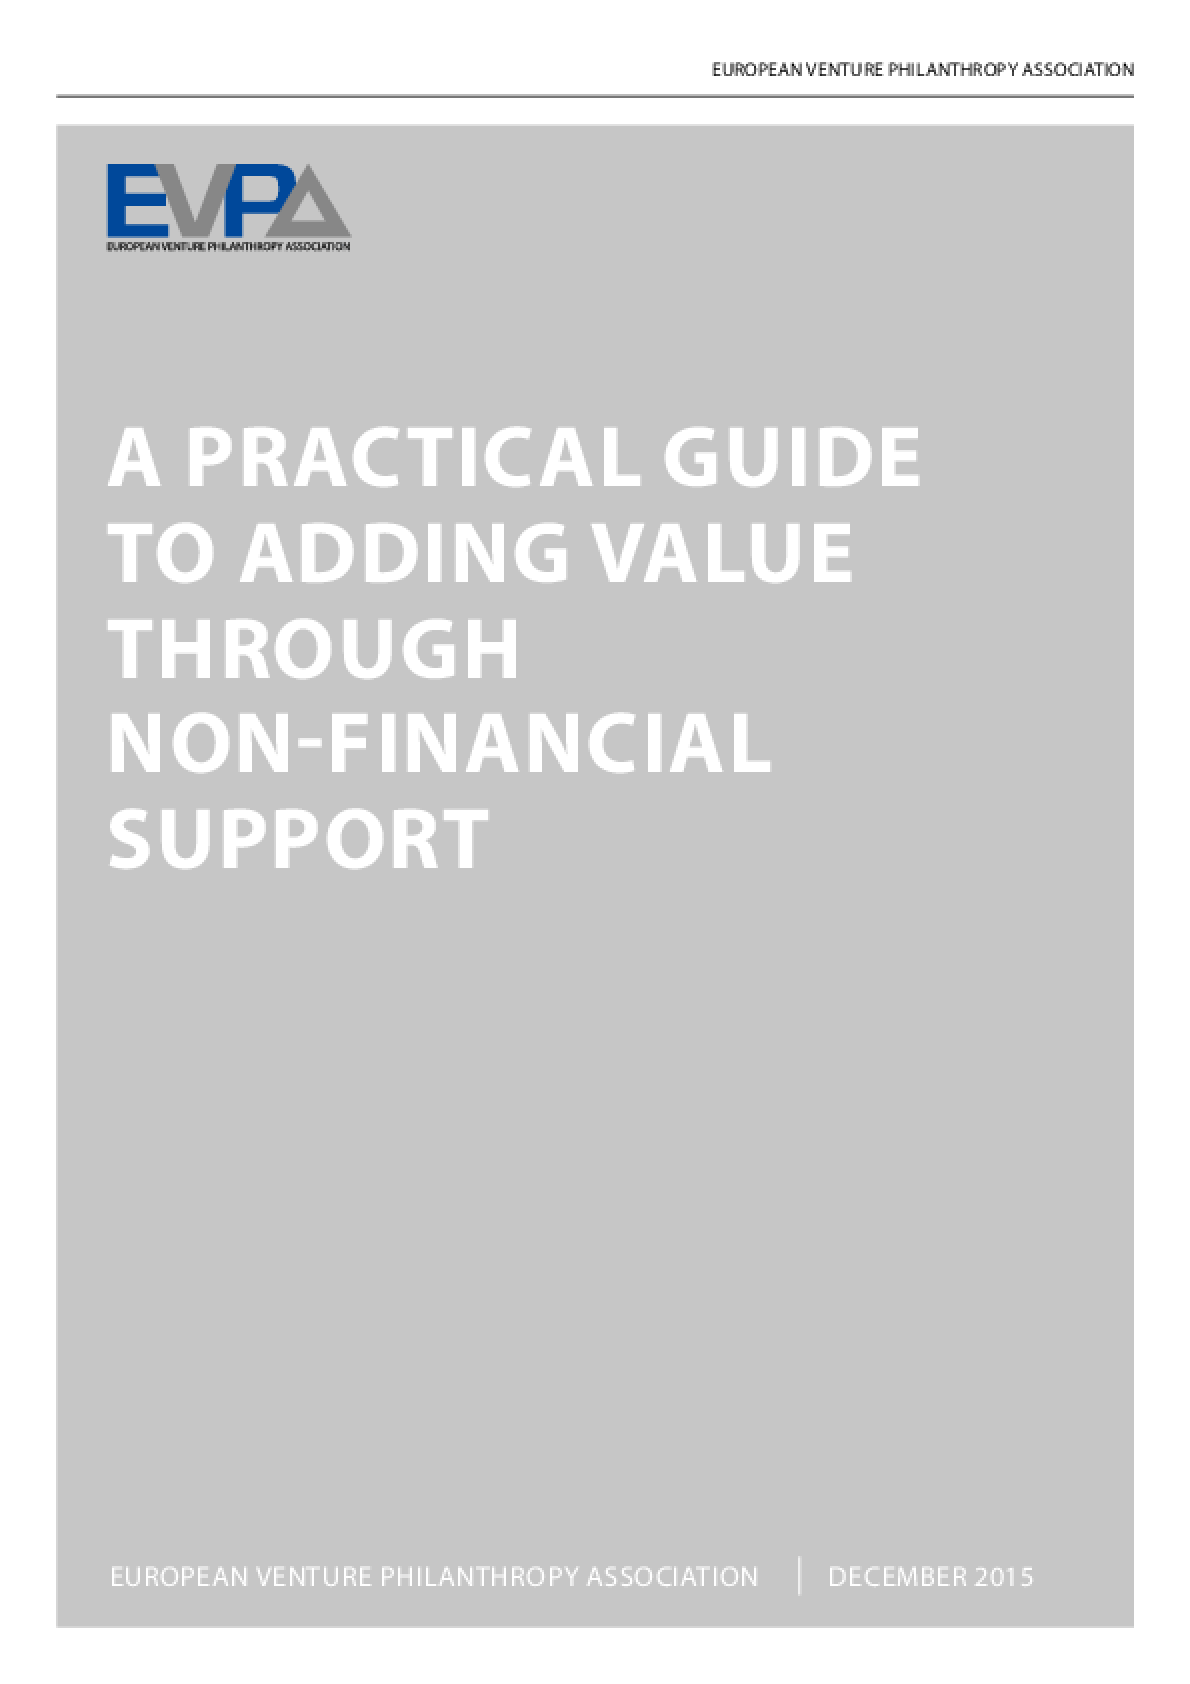 A Practical Guide to Adding Value Through Non-financial Support